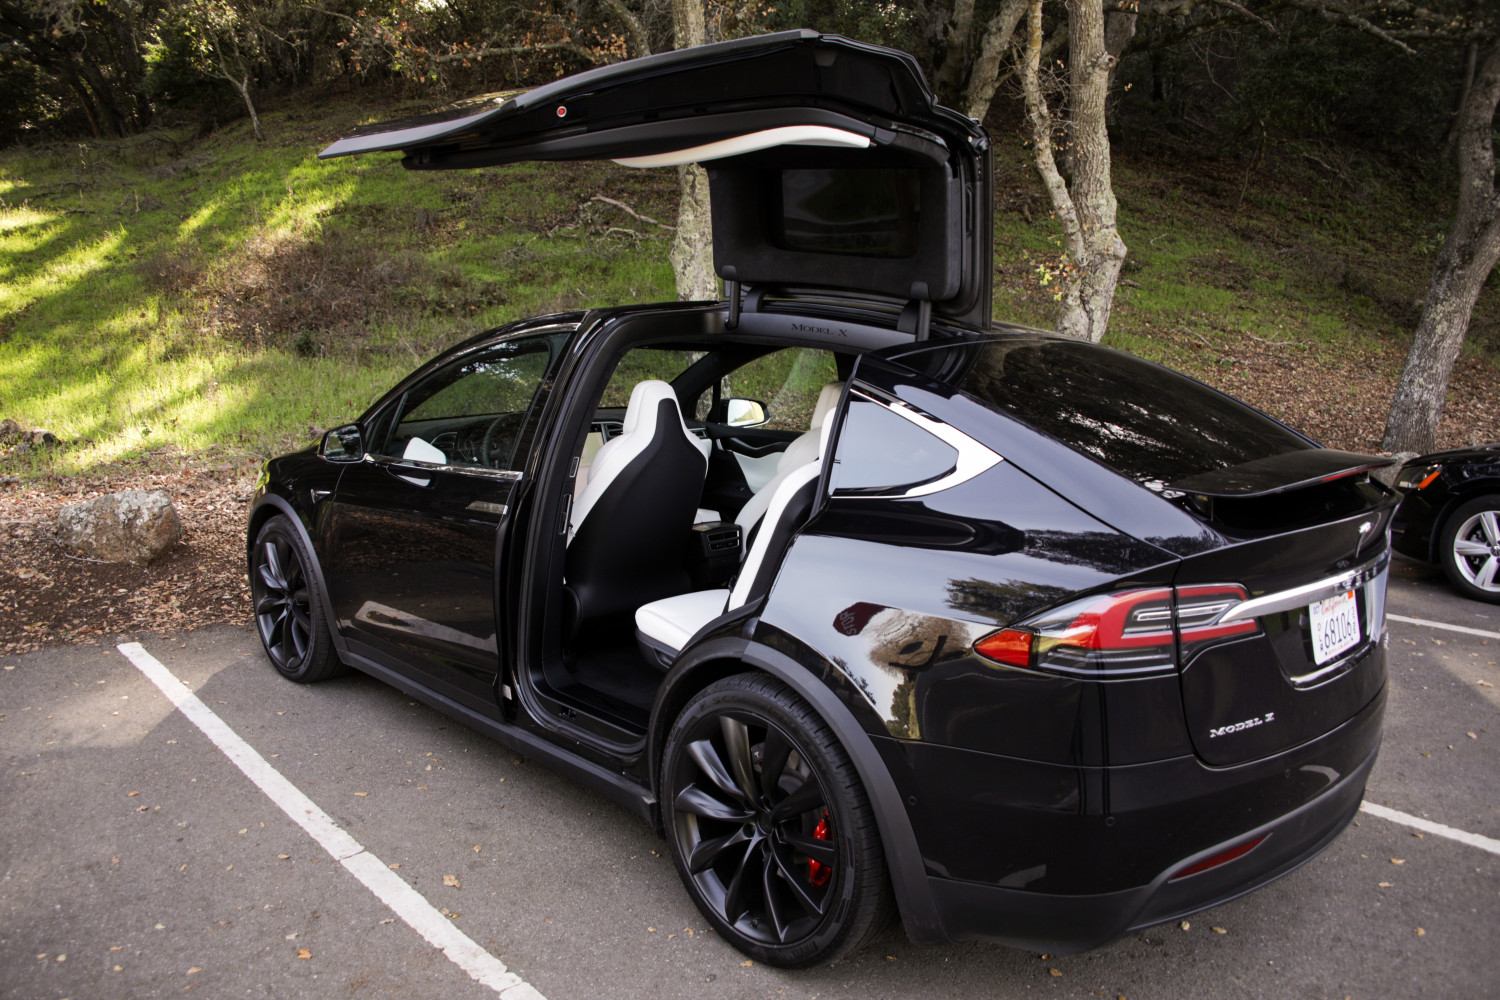 Swiss police order up Tesla Model X police cars for active duty